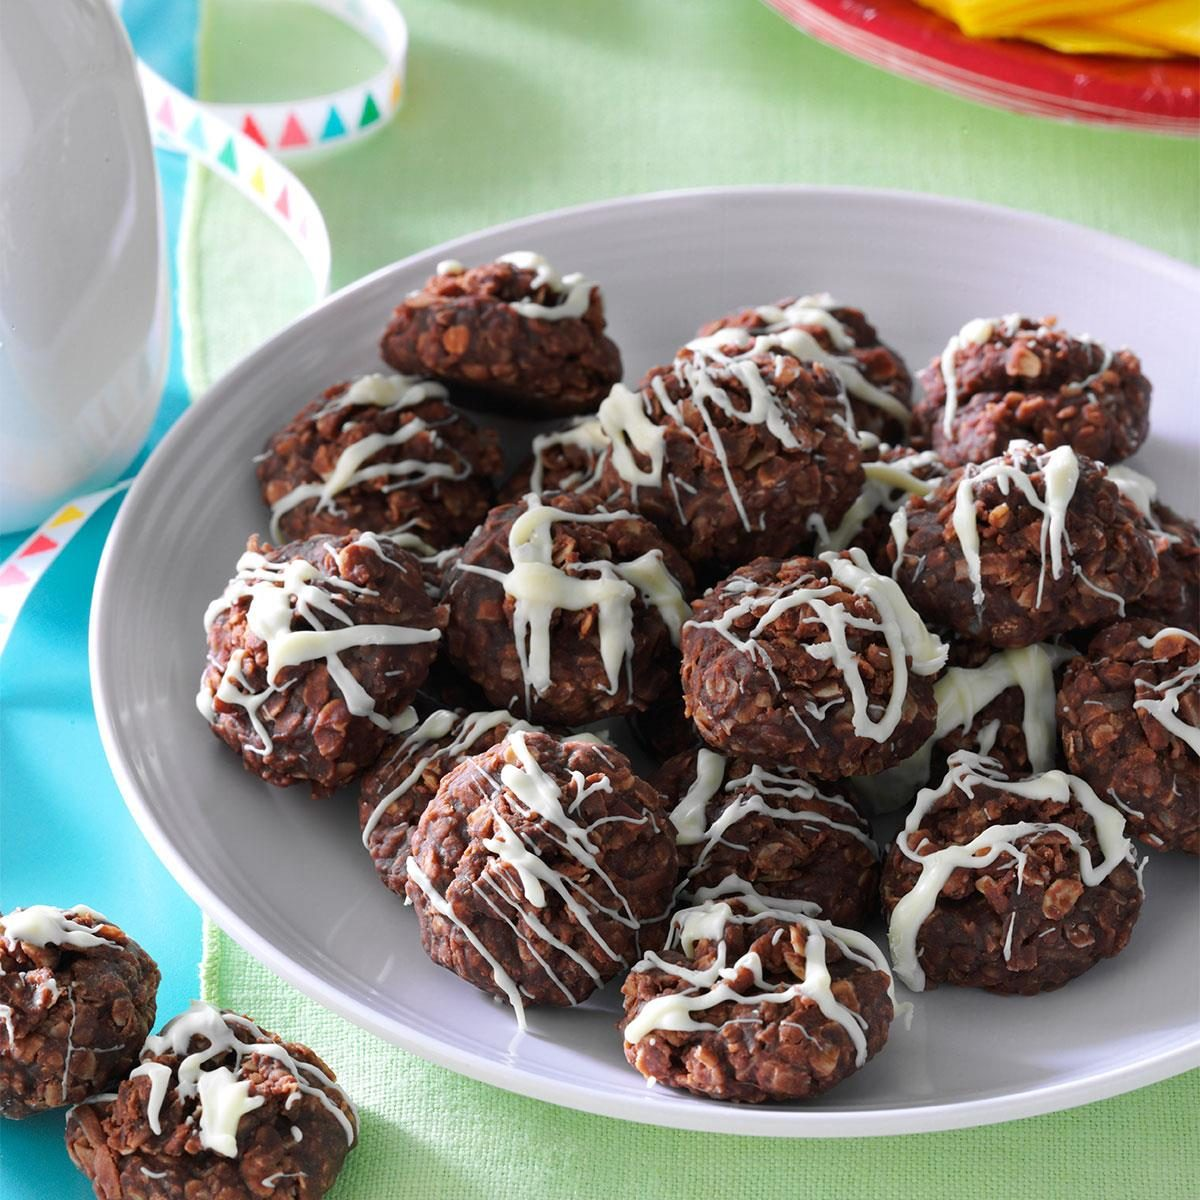 18 Chocolate No-Bake Cookies